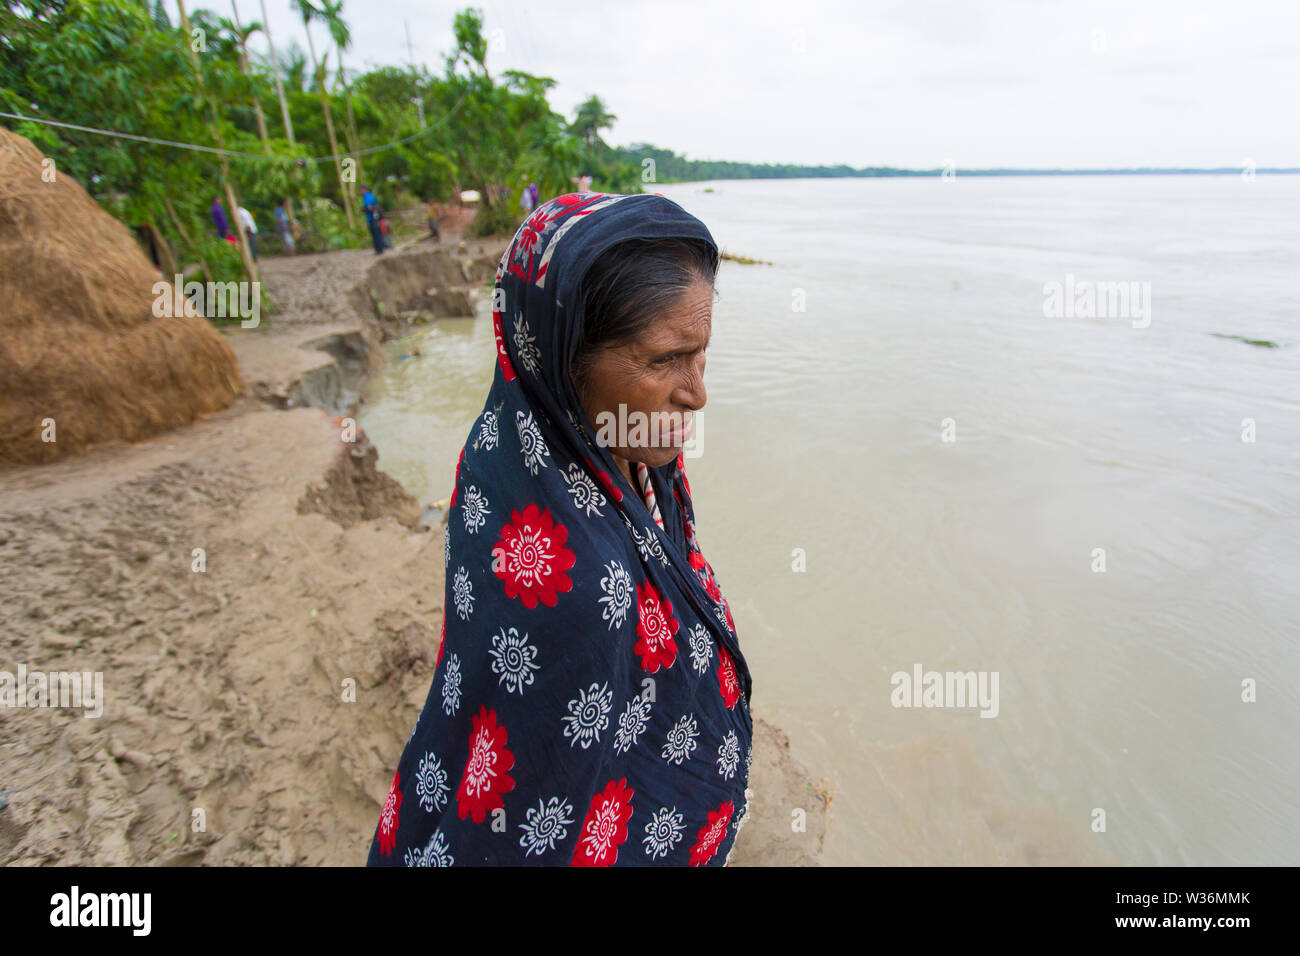 Bangladesh – June 27, 2015: Old woman victims of massive river erosion, the water of the Kirtonkhola was flowing 5cm above the danger level of 2.55 me - Stock Image